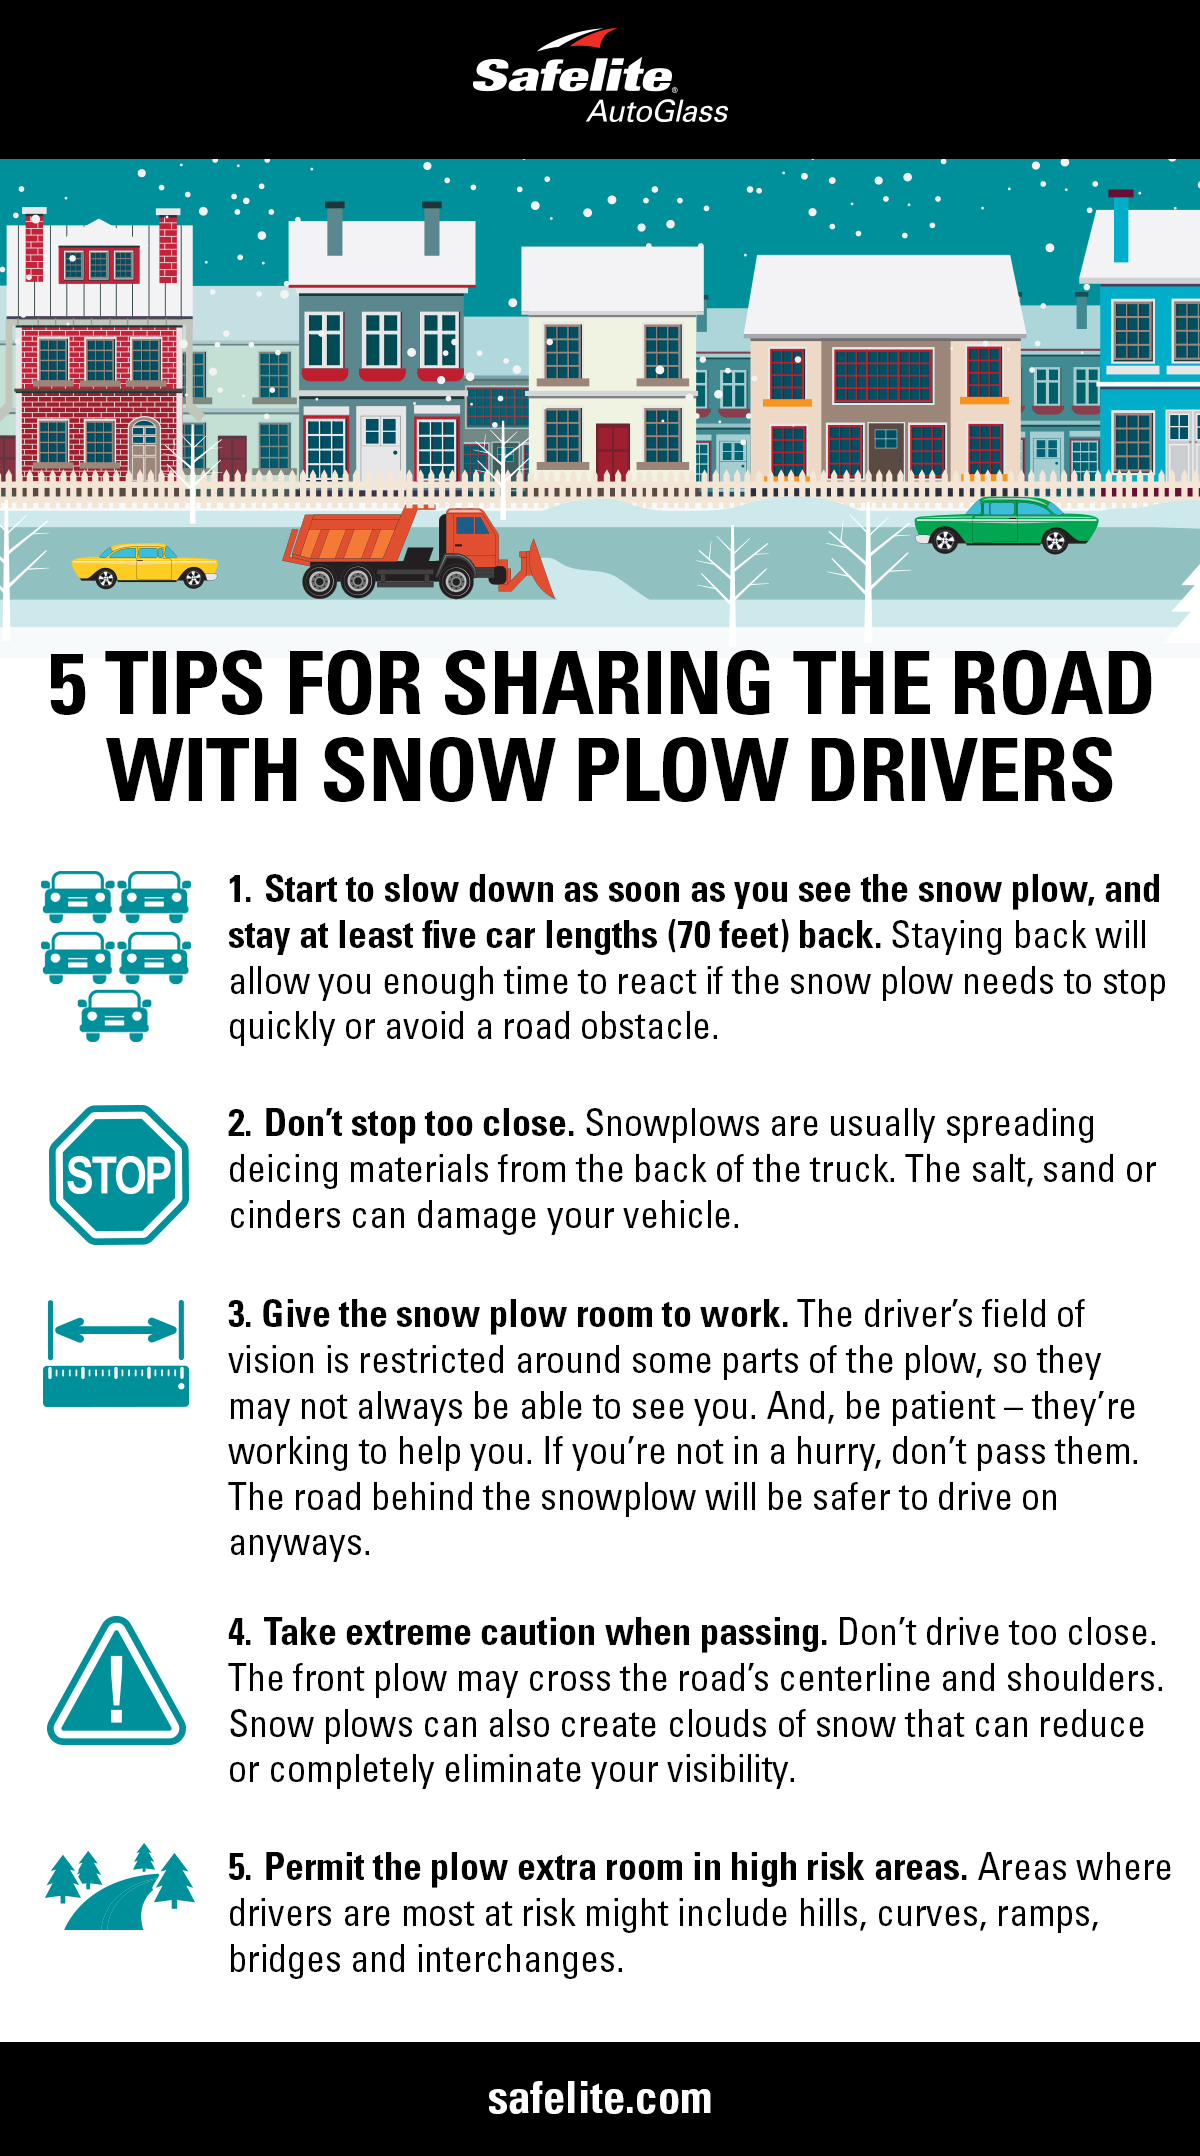 Safelite wants you to drive safely on winter roads. Here are five tips to stay safe when sharing the road with snow plows.